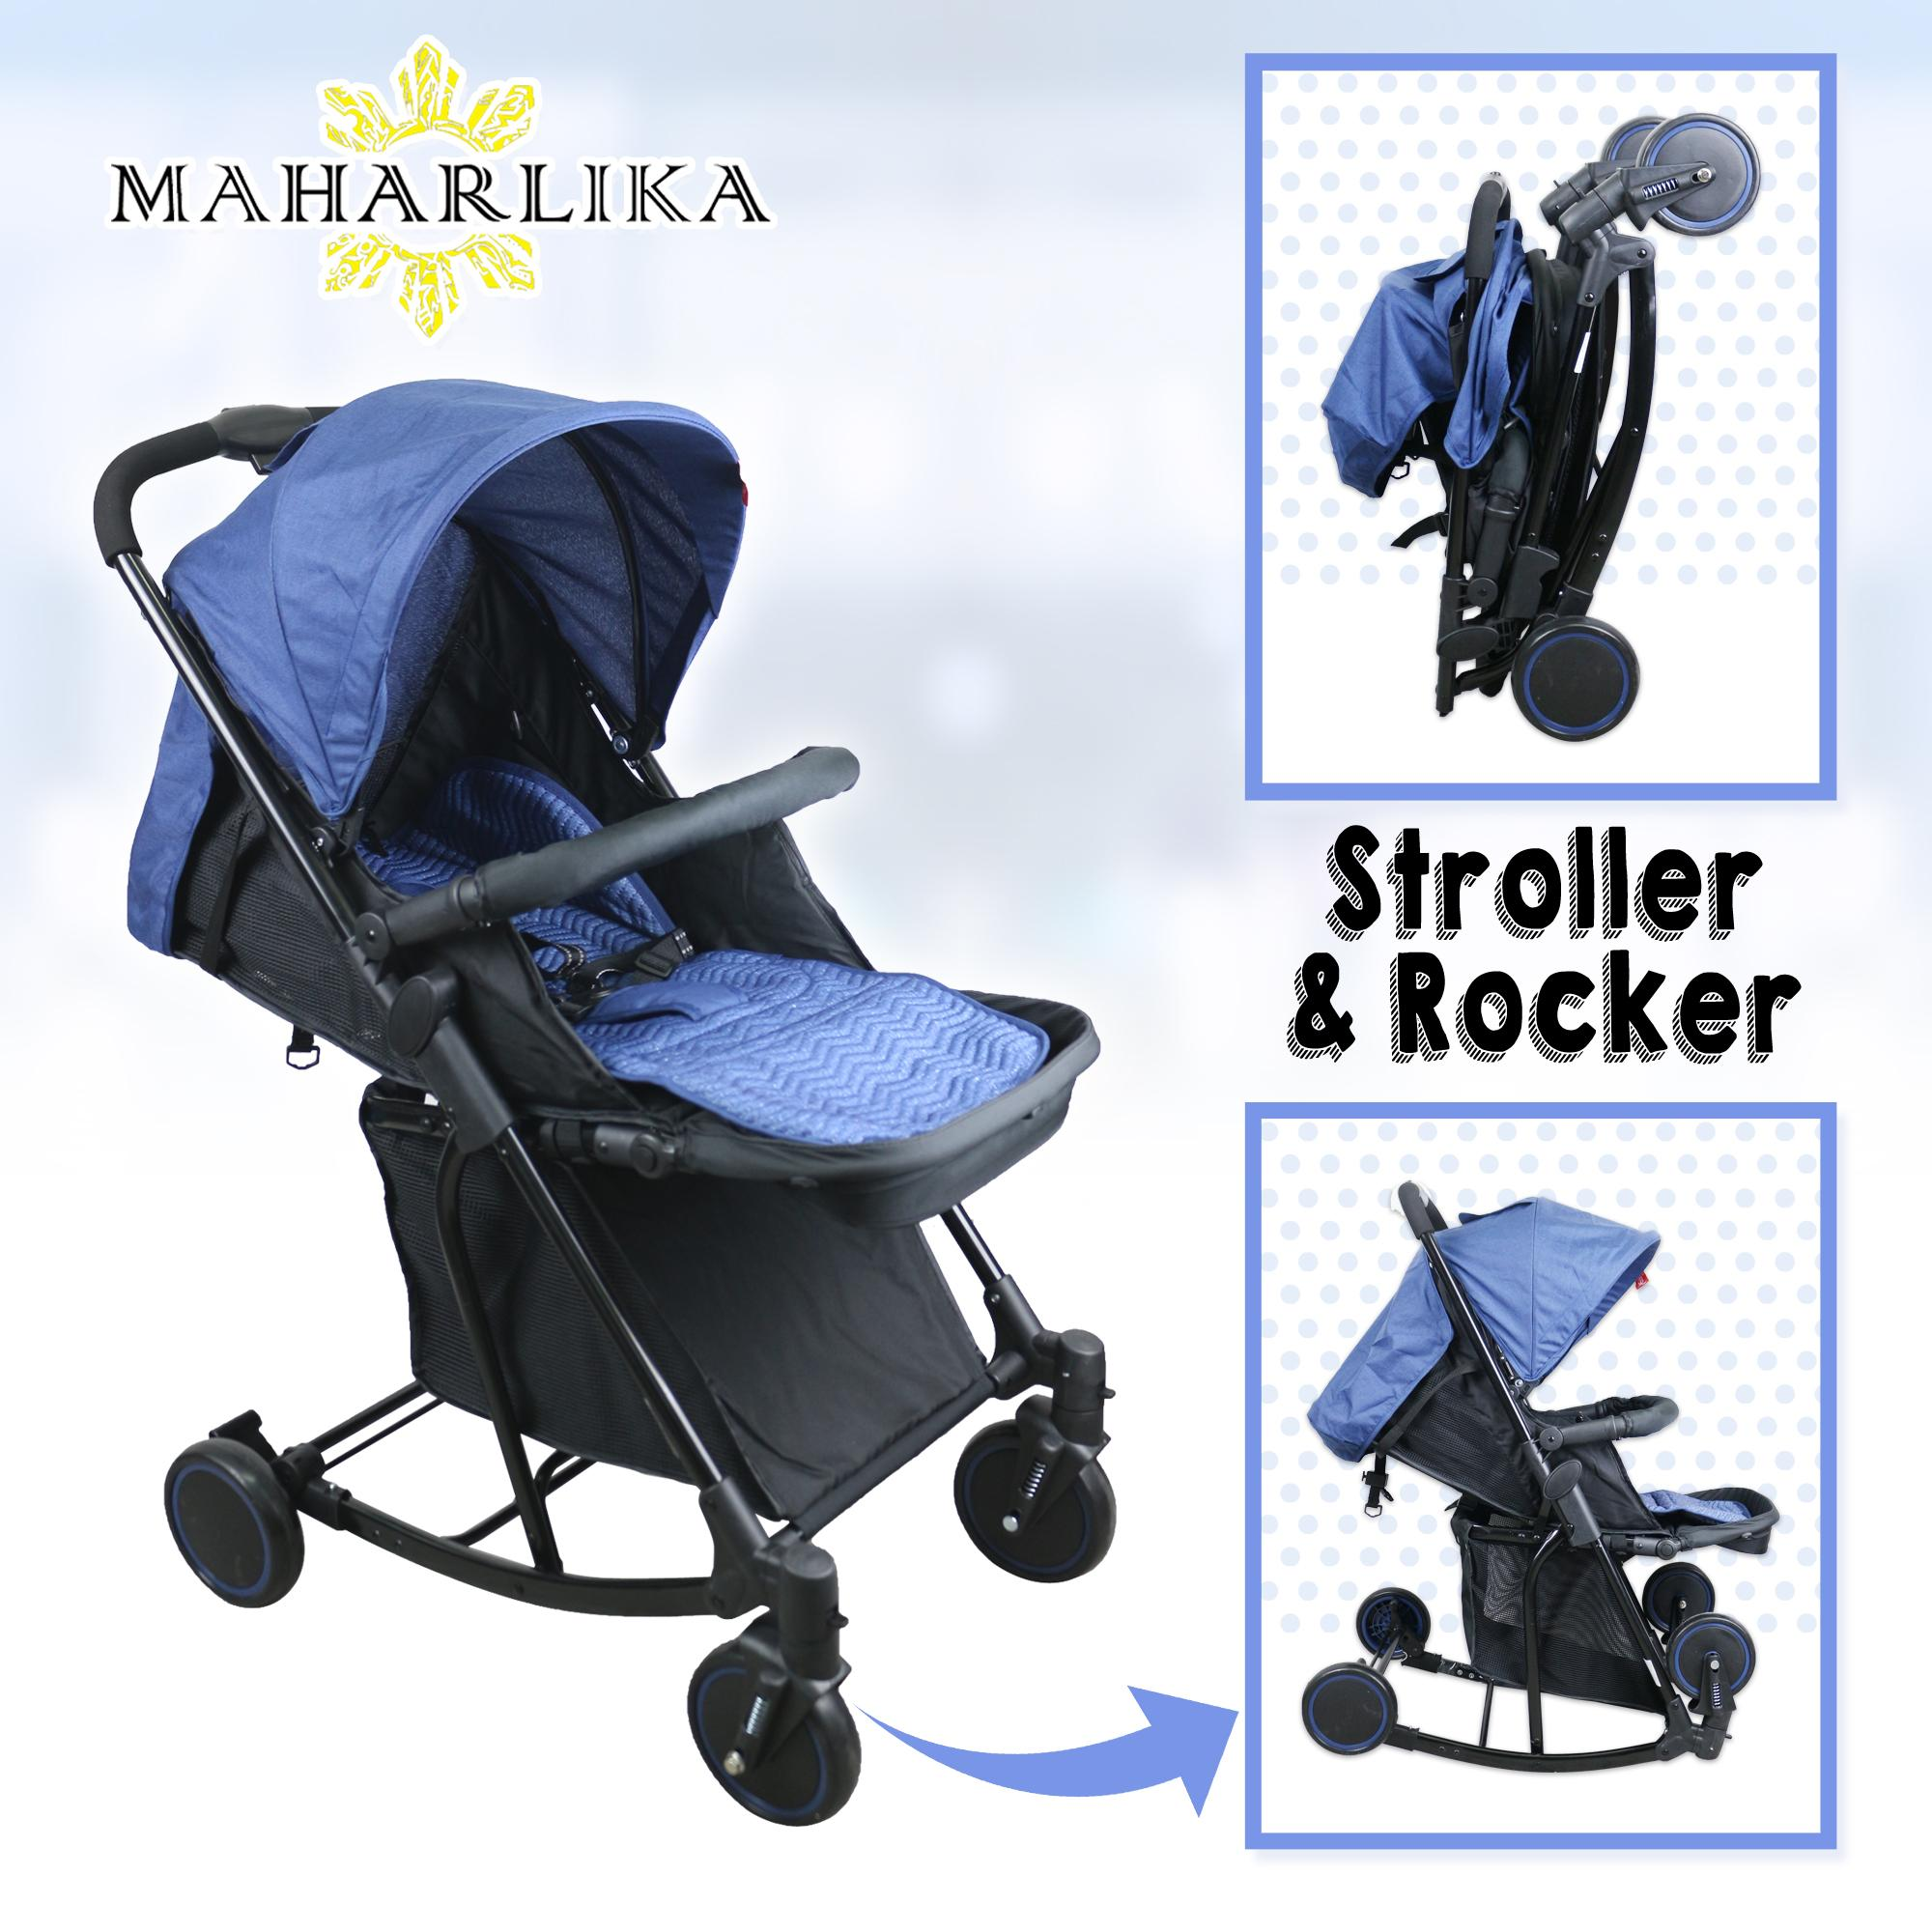 Mk Folding Convertible Baby Stroller Rocker For Baby 0 To 3 Years Old T609 By Maharlika.